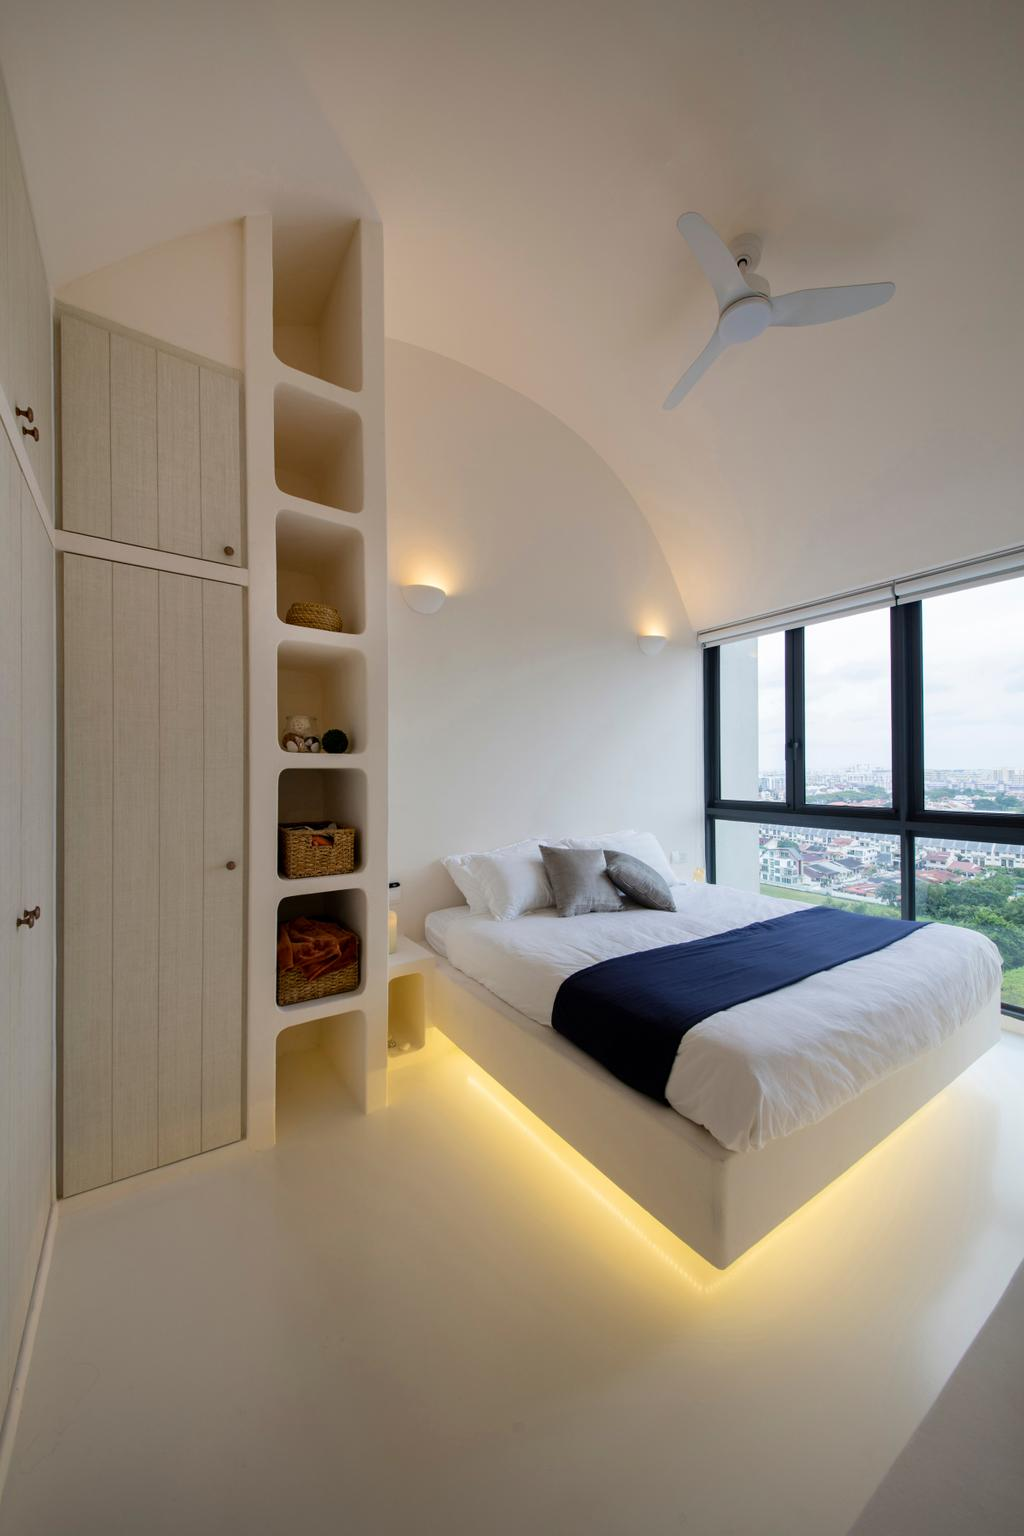 Eclectic, Condo, Bedroom, Skypark Residences, Interior Designer, Edge Interior, Bed, Furniture, Indoors, Interior Design, Room